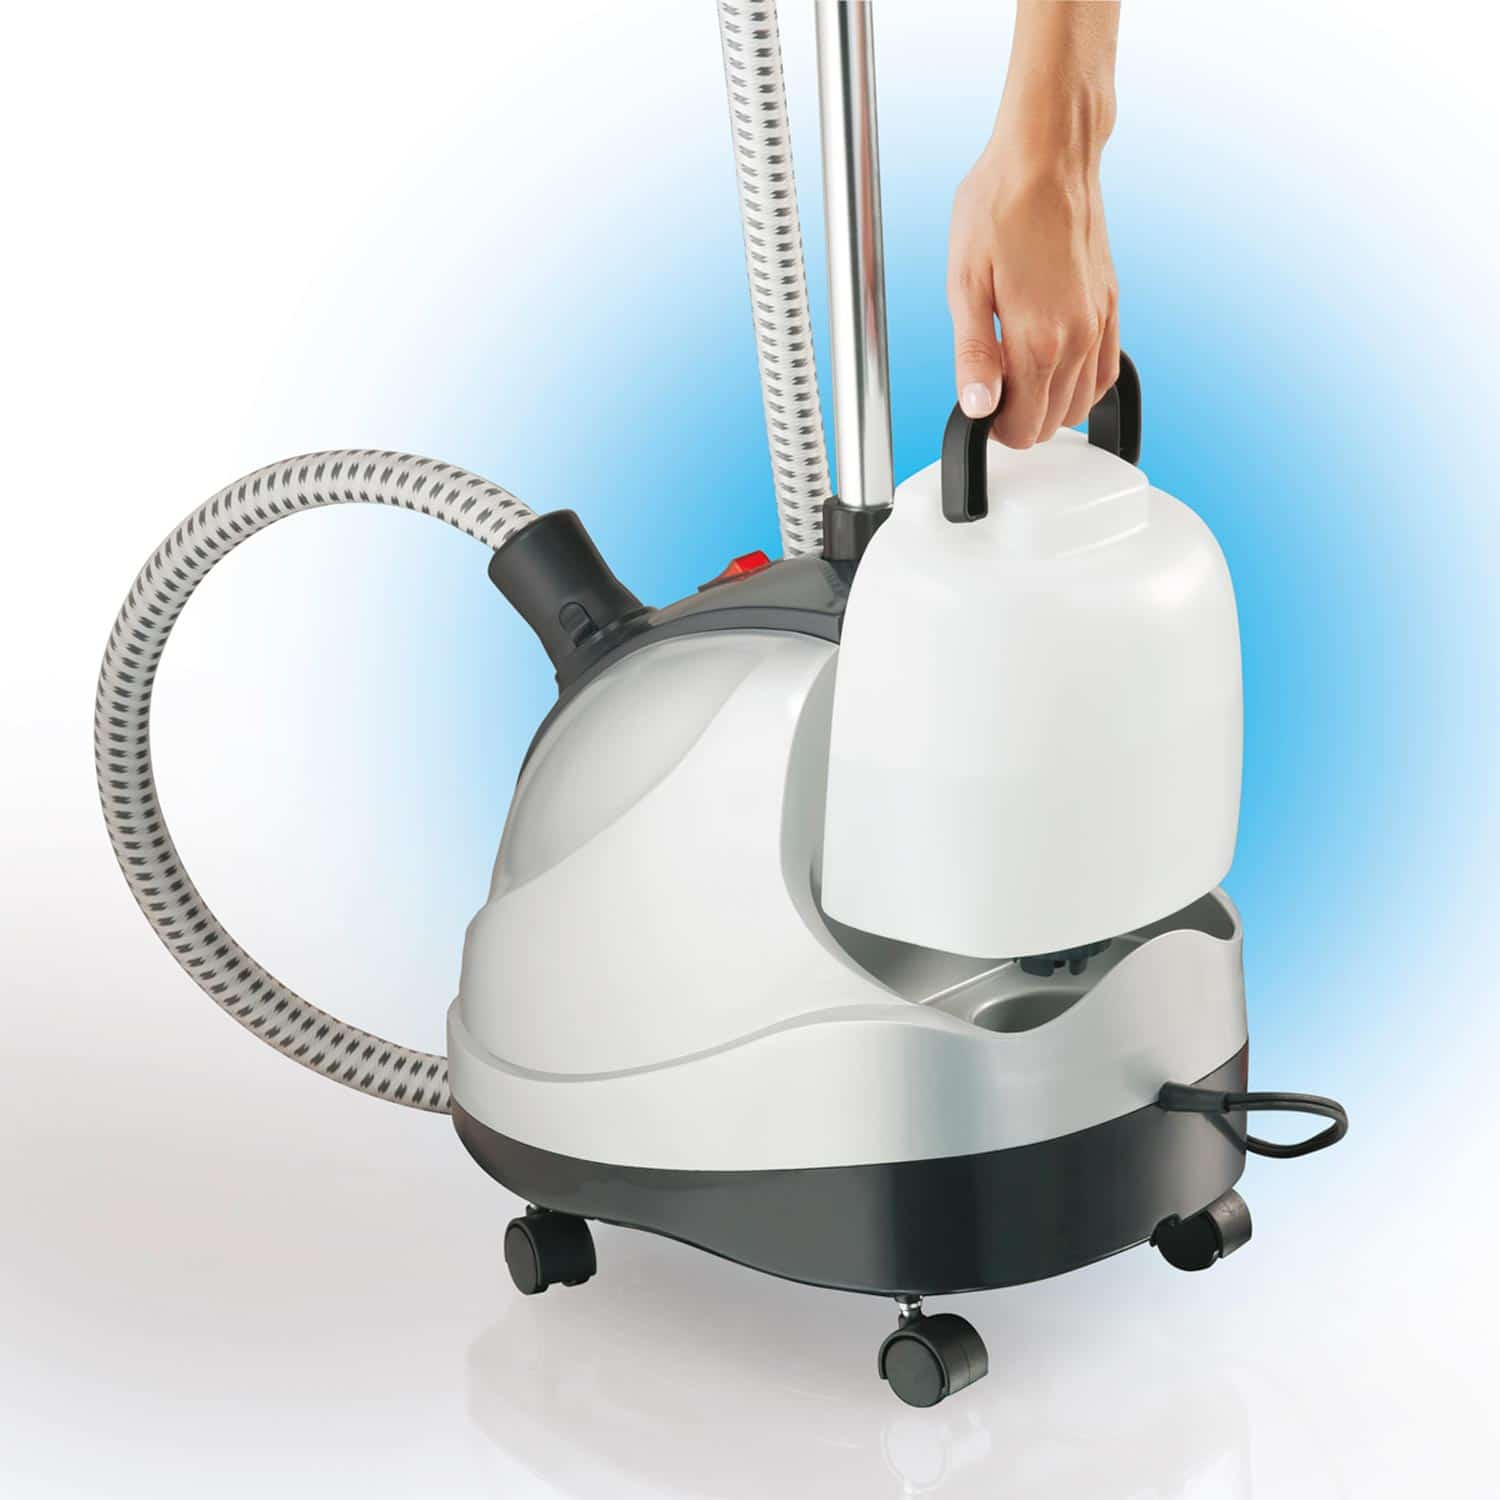 full-size-garment-steamer-with-removable-reservoir-11550